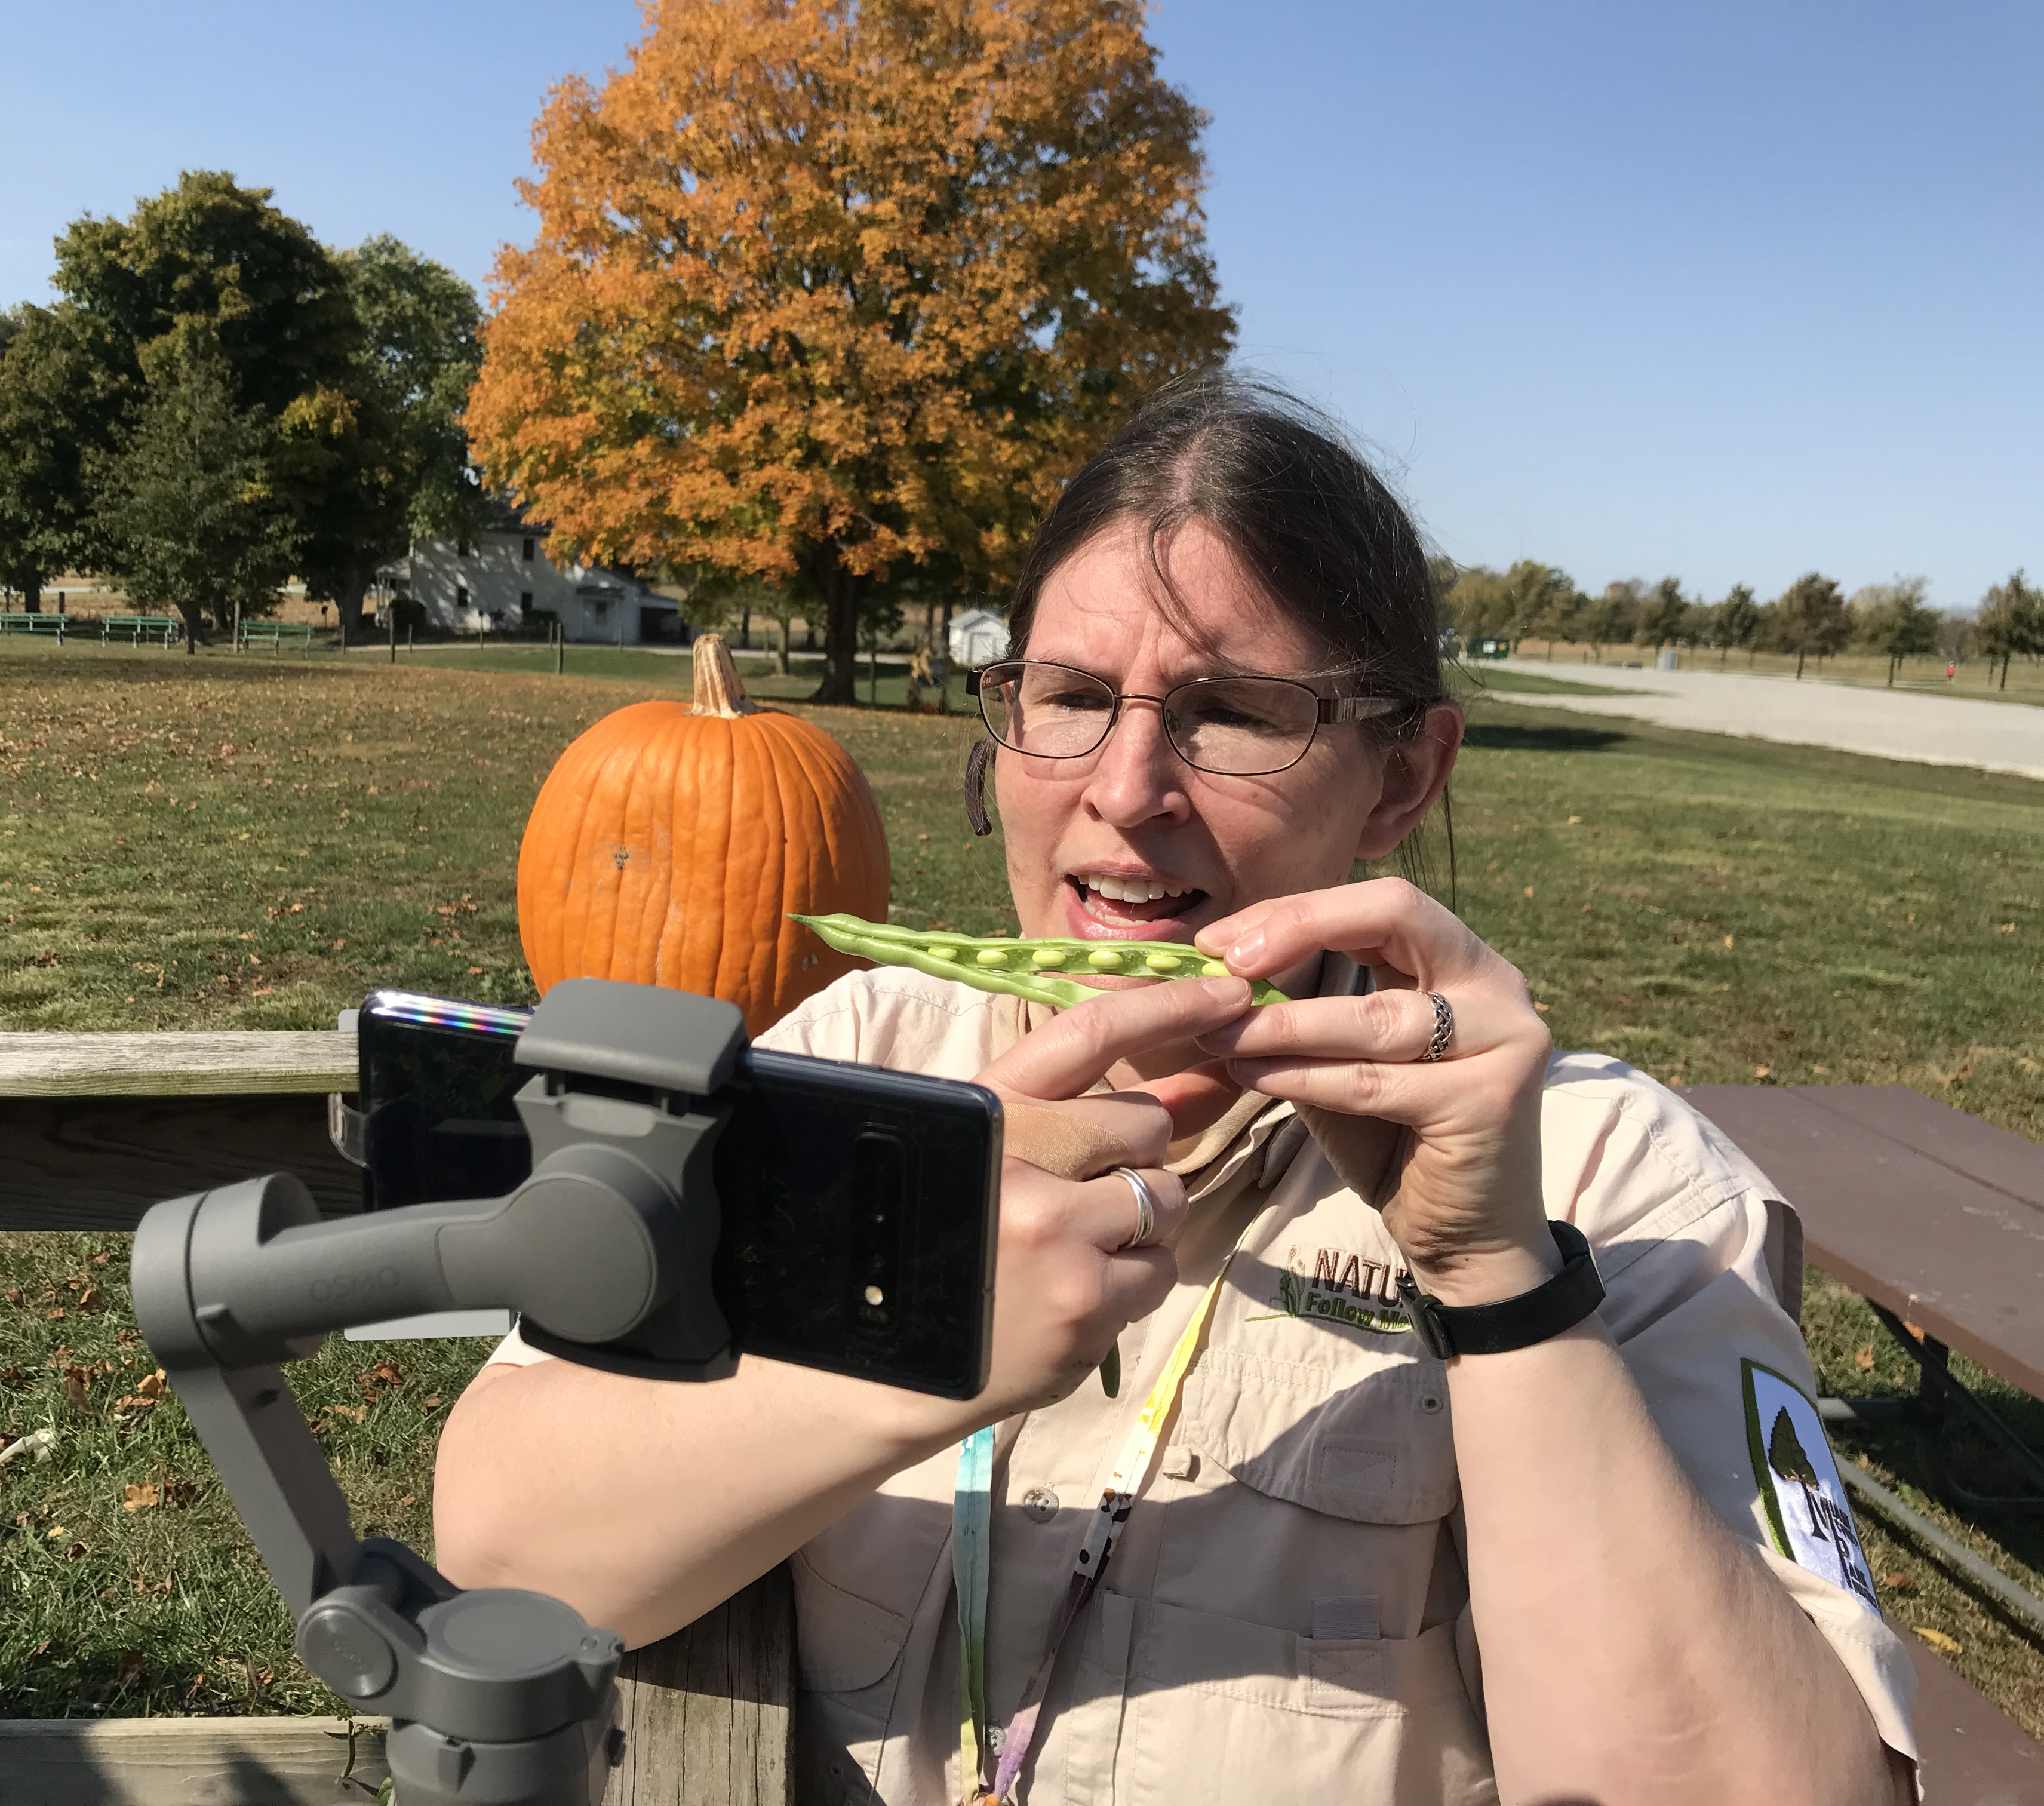 Naturalist showing a pumpkin in front of a camera.